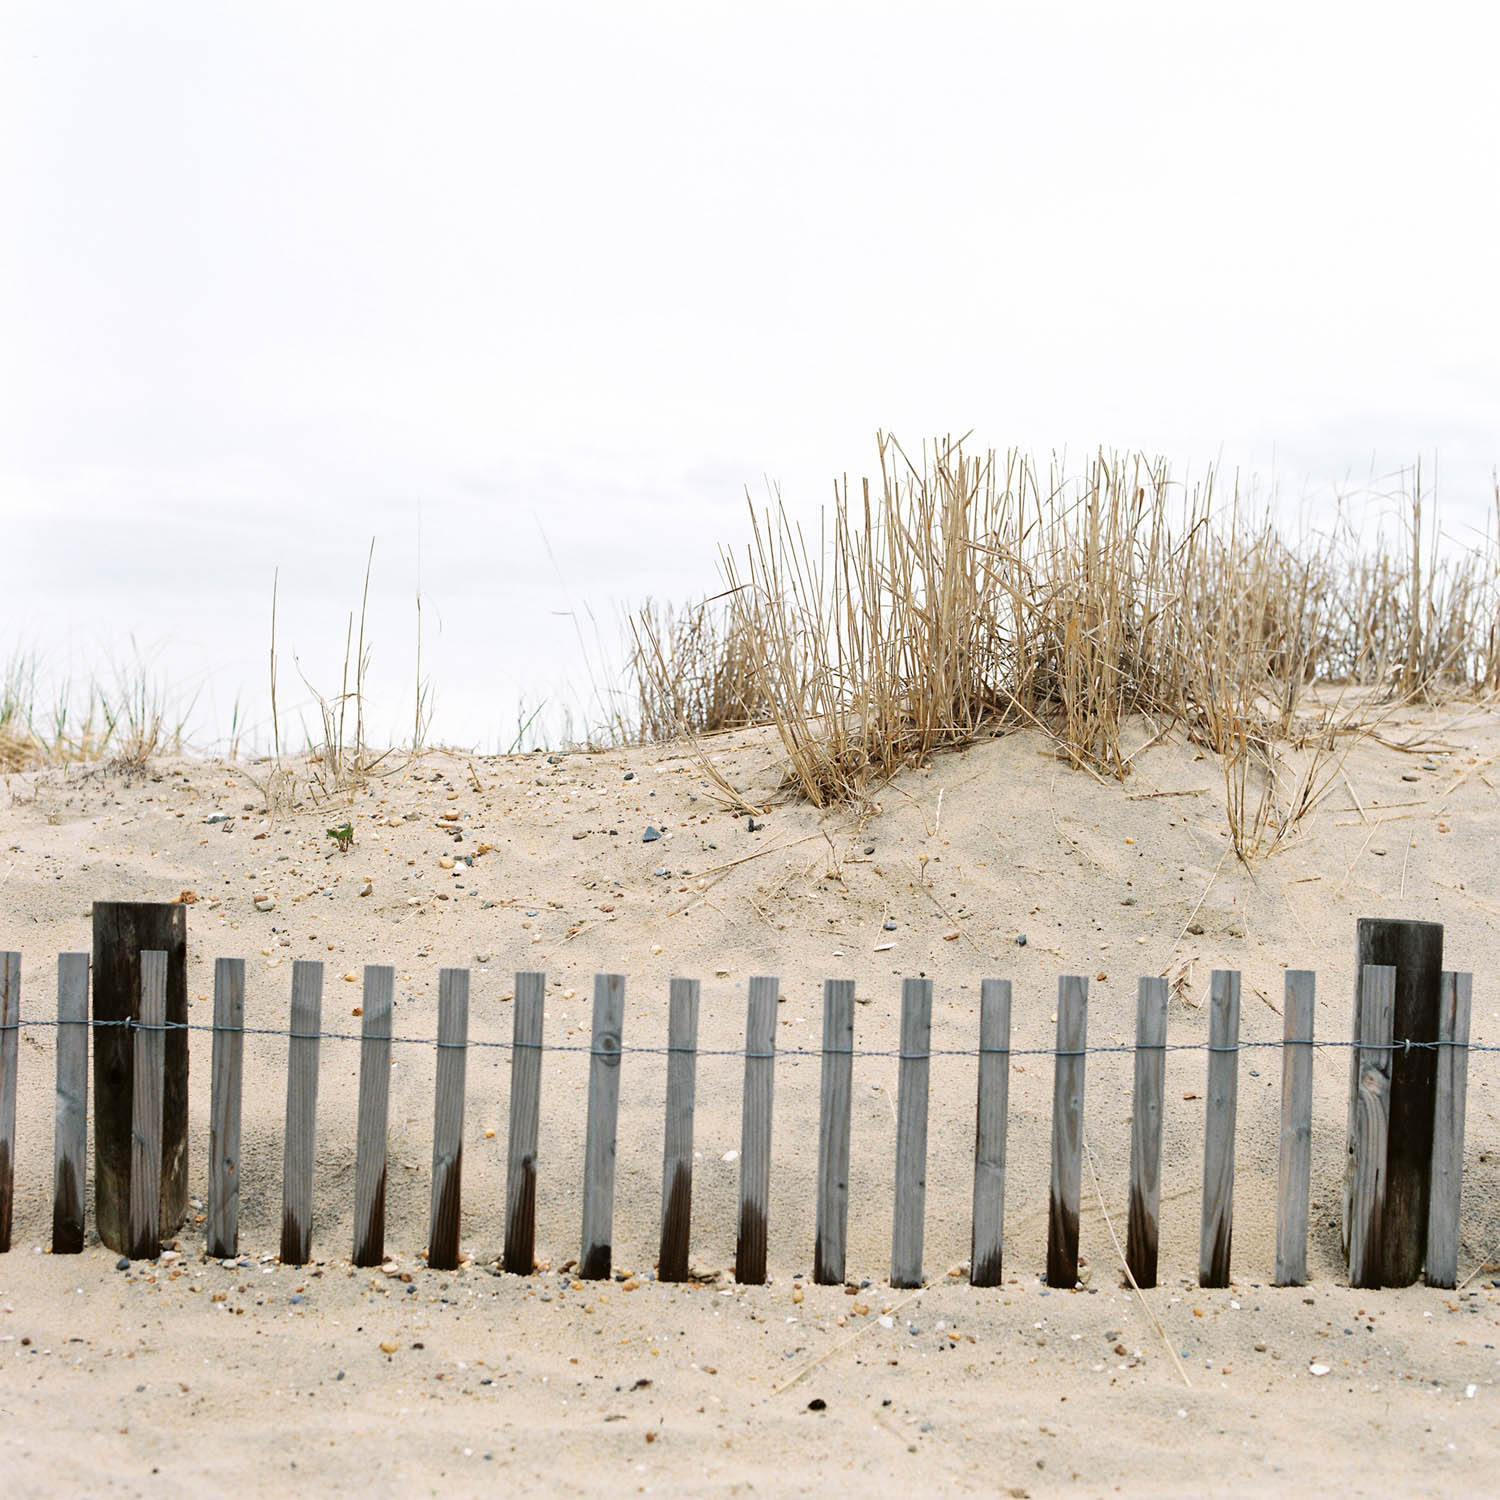 Rehoboth Beach, Delaware. Sand and wooden fence. Hasselblad 500c on Fuji Pro 400H